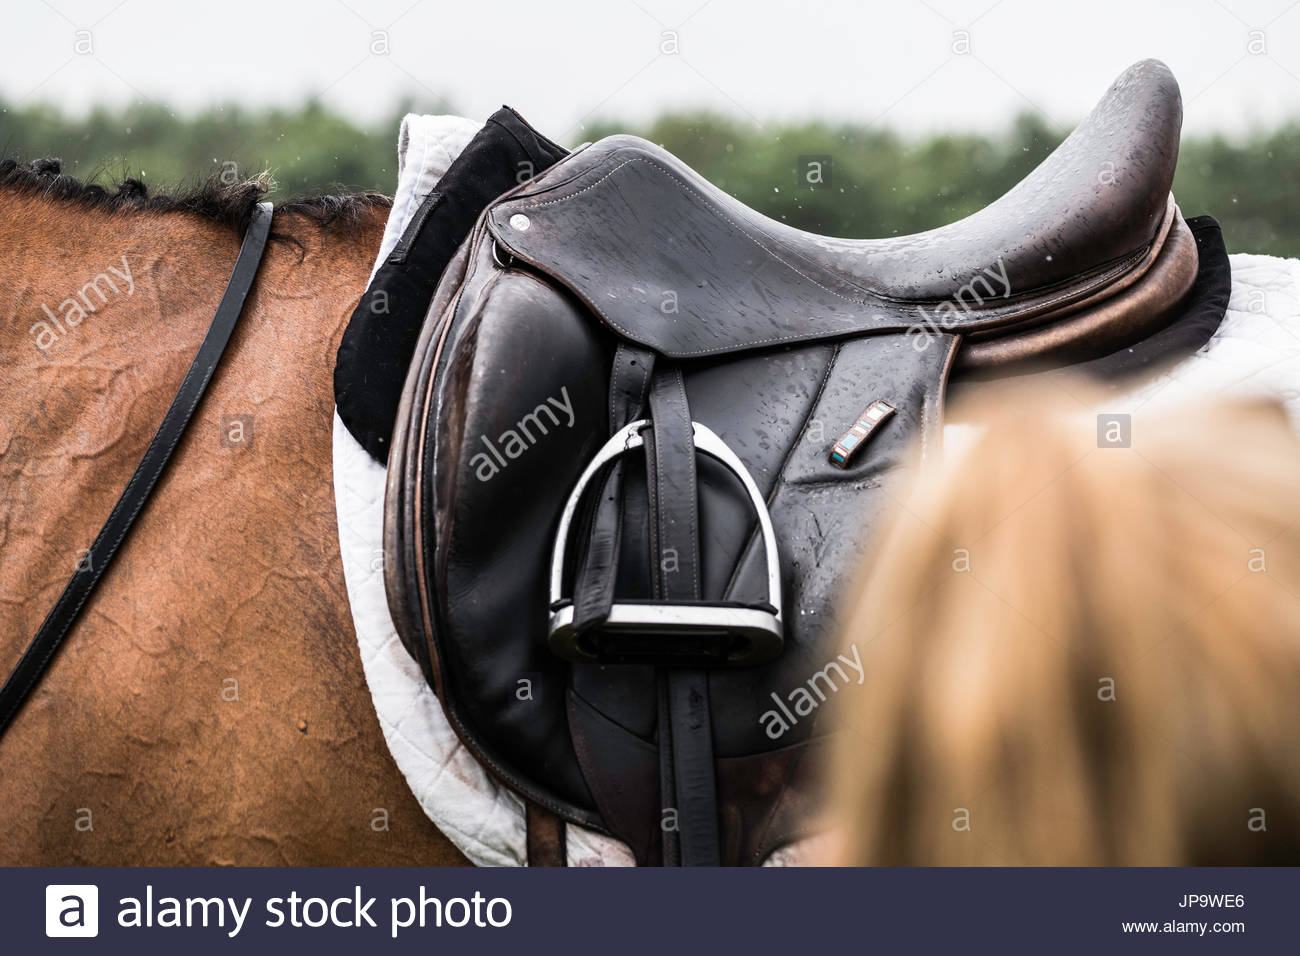 Burgham, Morpeth, Northumberland, UK. 28/29th July 2017. Eventers compete at Burgham International Horse Trials in the disciplines of Dressage, Showju - Stock Image